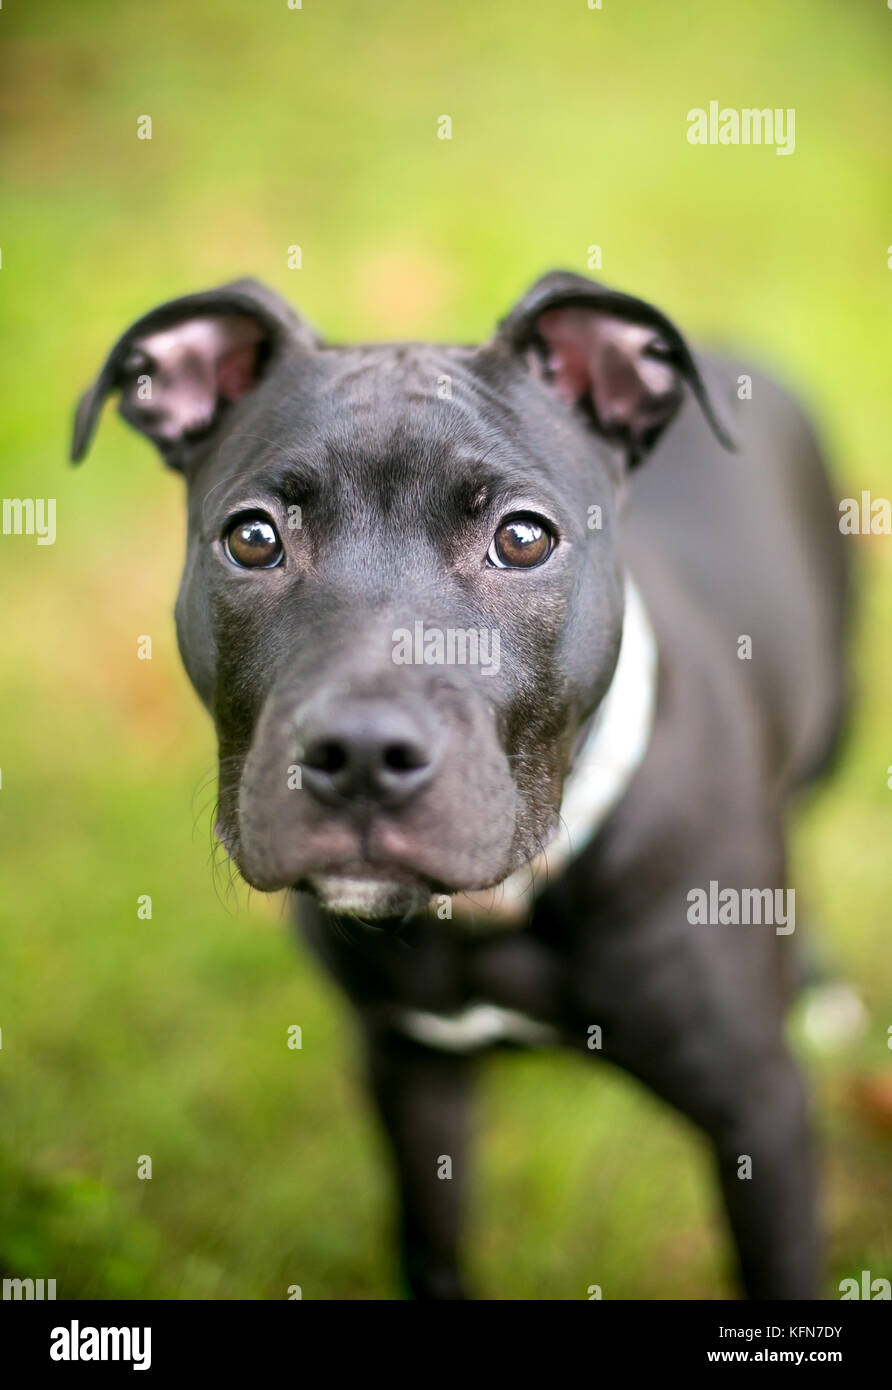 A Black Pit Bull Terrier Mixed Breed Puppy Stock Photo 164580023